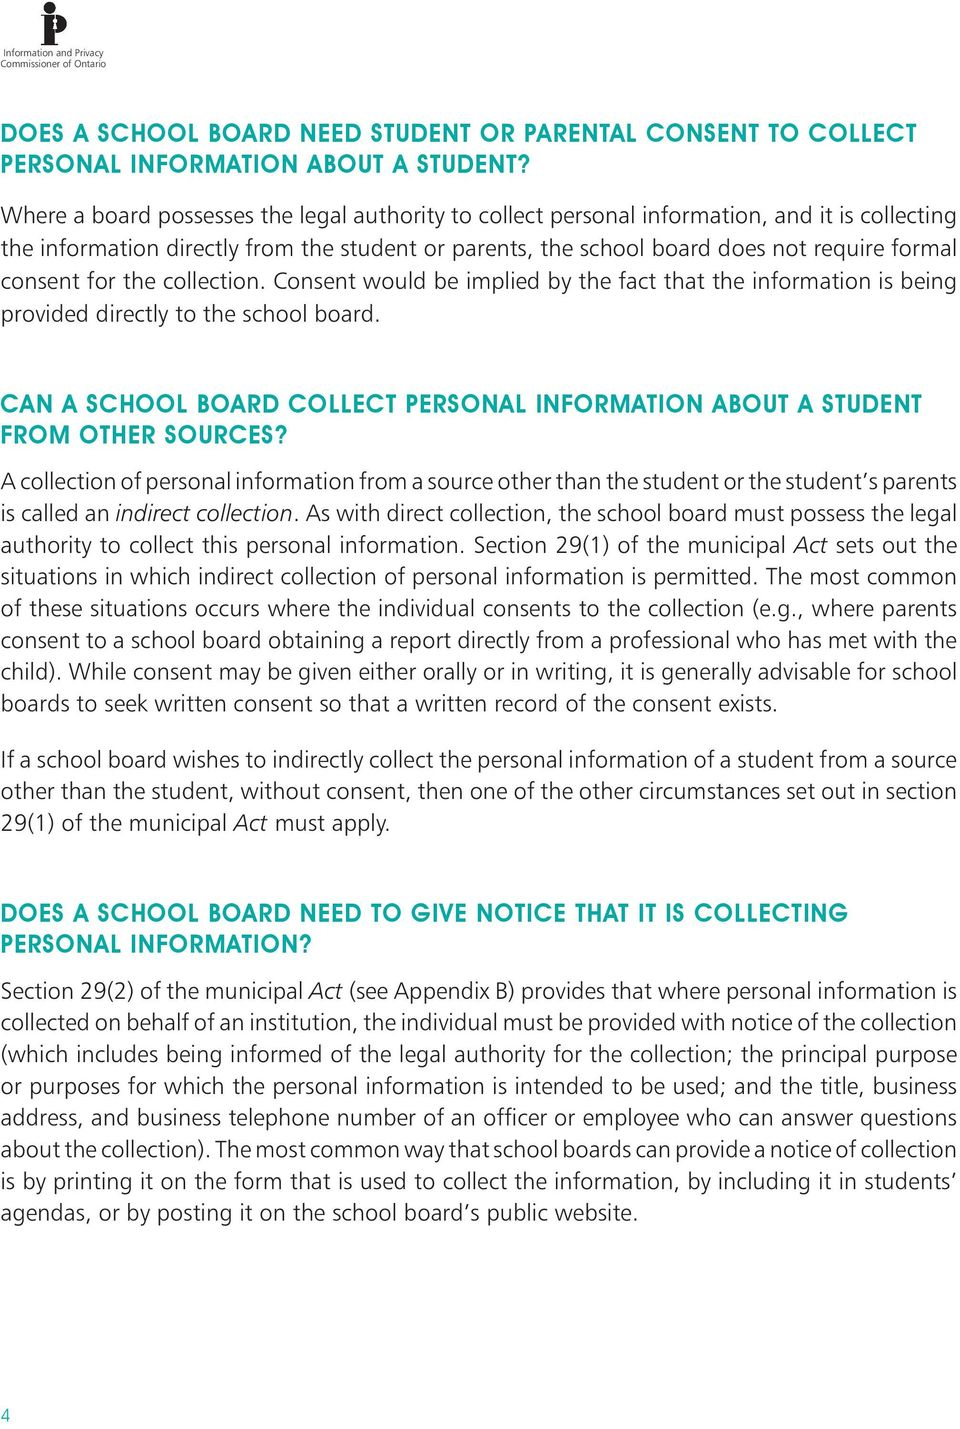 consent for the collection. Consent would be implied by the fact that the information is being provided directly to the school board.